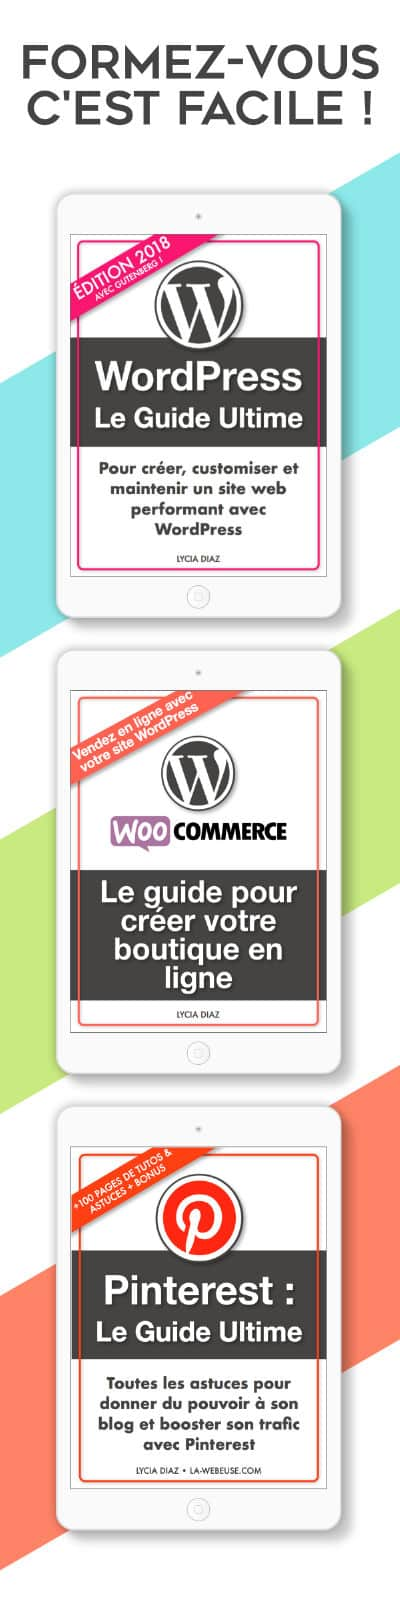 Ebooks PDF WordPress WooCommerce